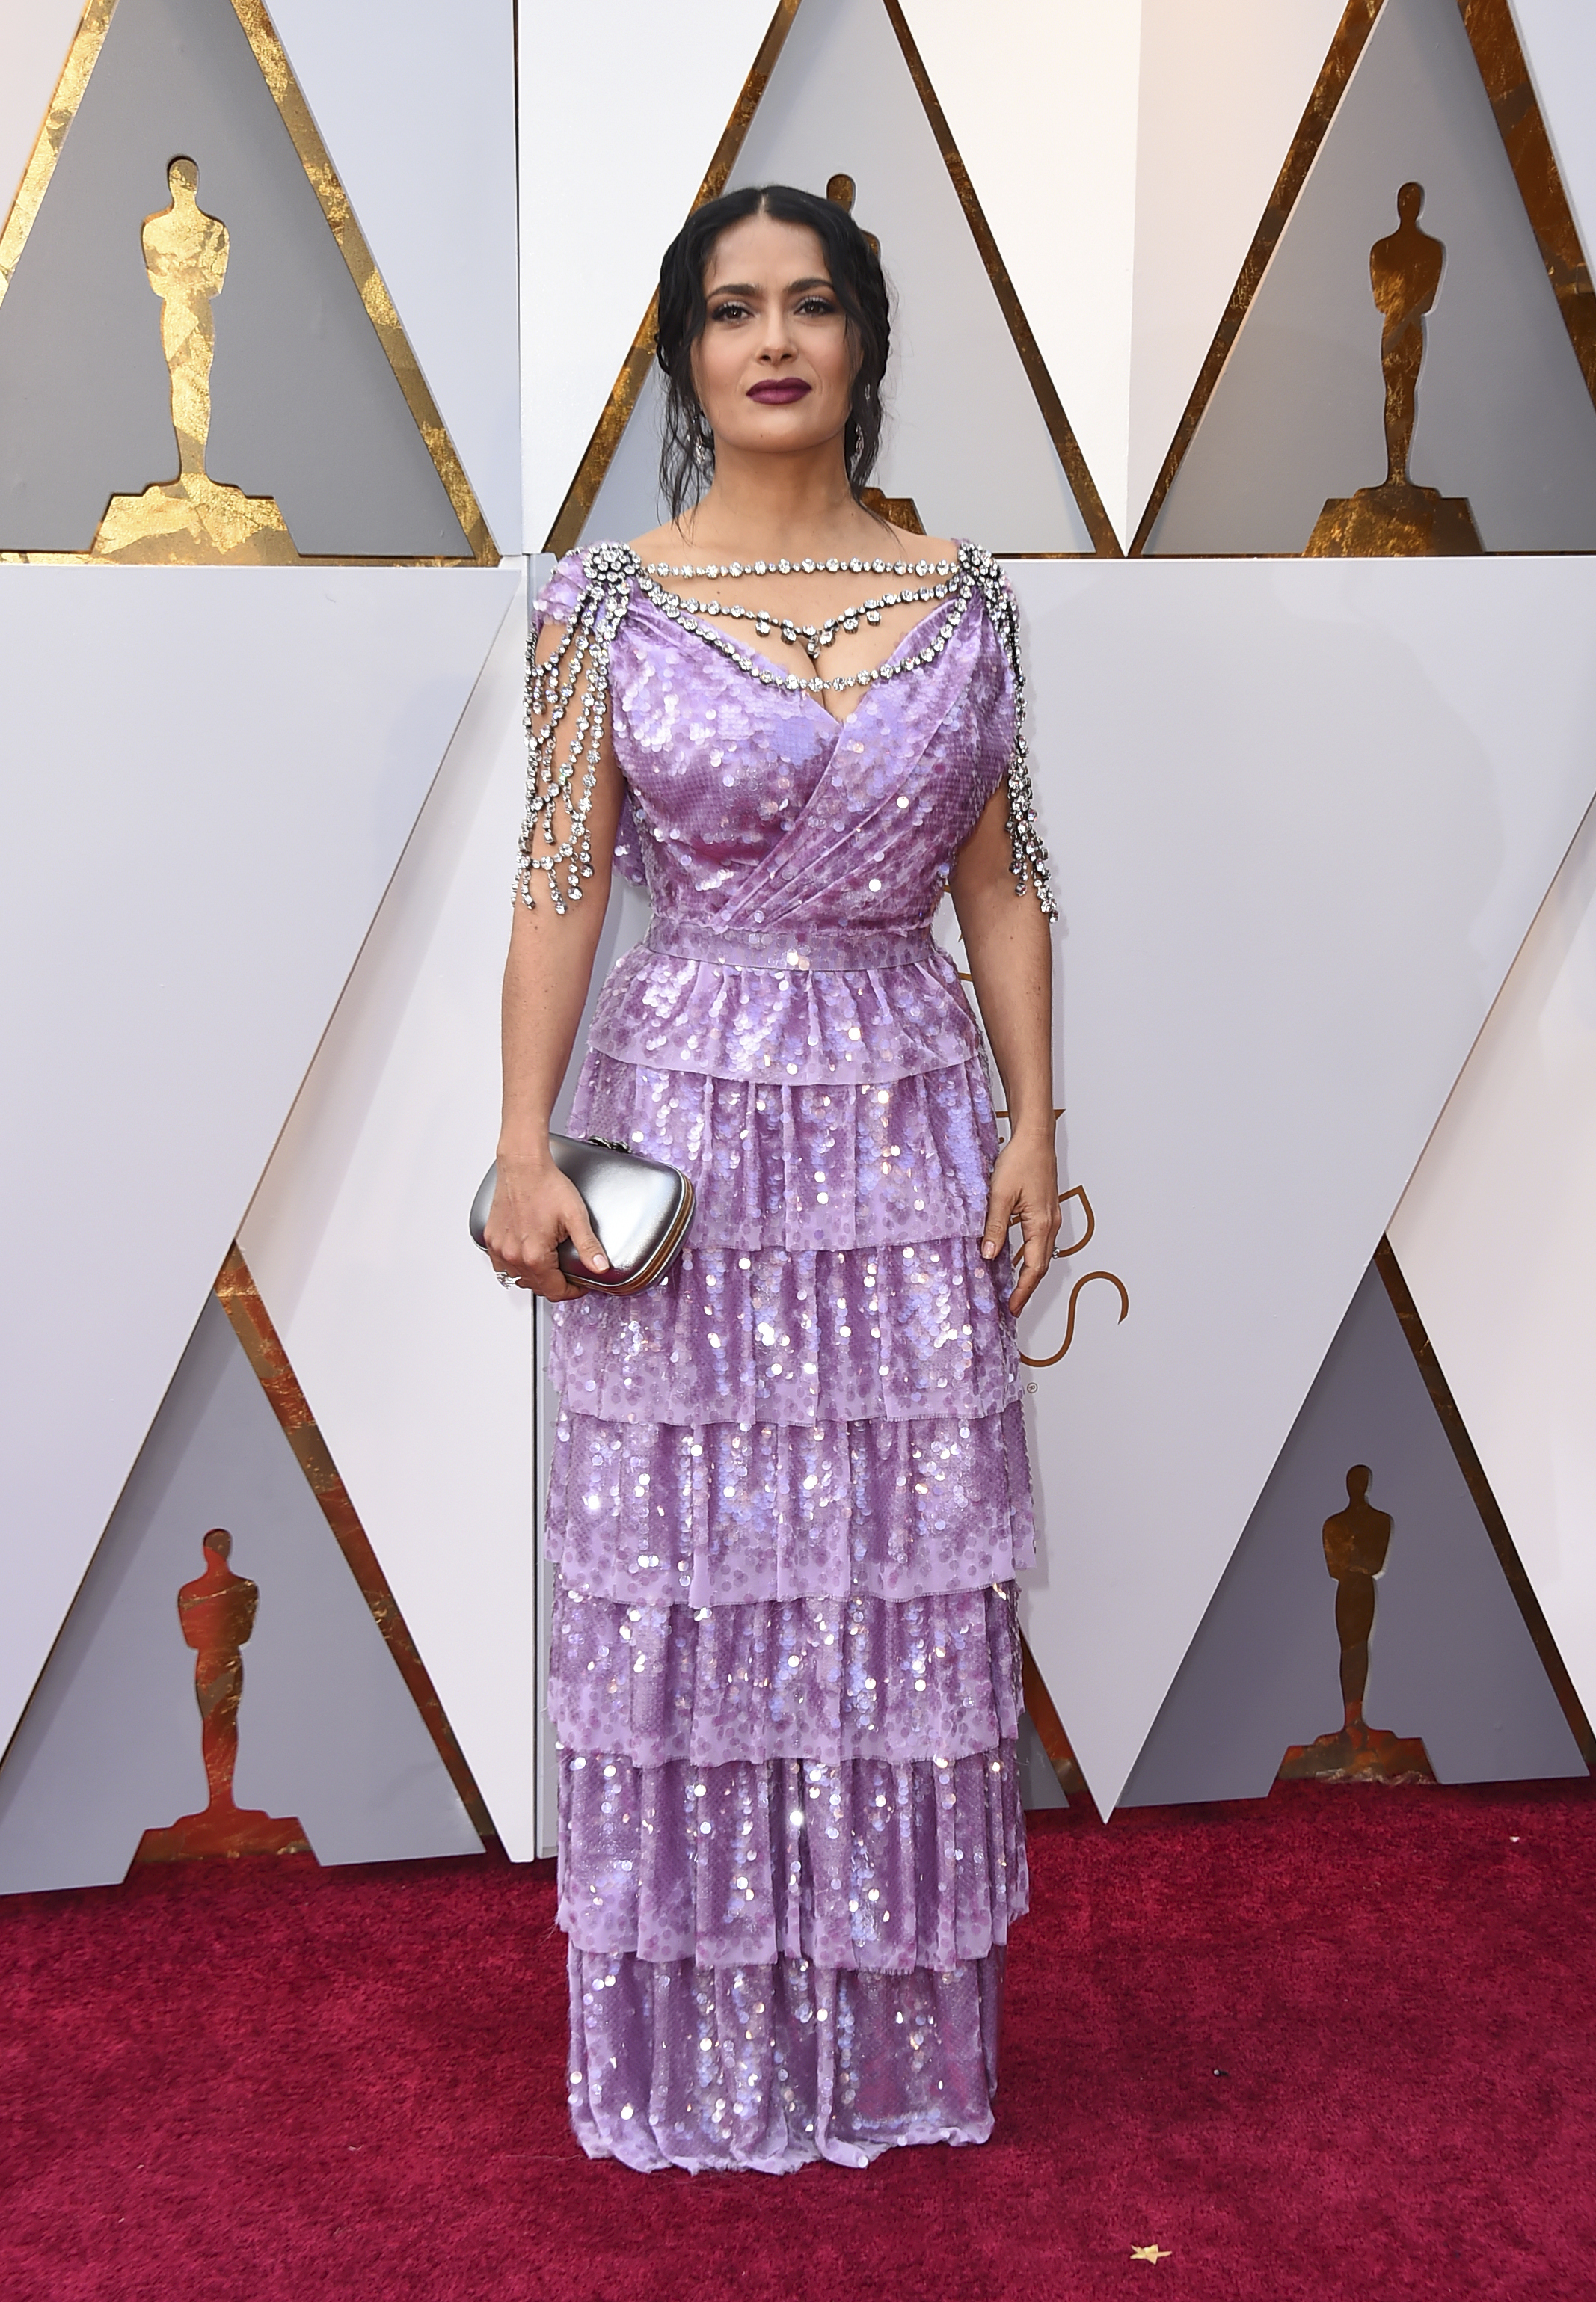 "<div class=""meta image-caption""><div class=""origin-logo origin-image none""><span>none</span></div><span class=""caption-text"">Salma Hayek arrives at the Oscars on Sunday, March 4, 2018, at the Dolby Theatre in Los Angeles. (Jordan Strauss/Invision/AP)</span></div>"